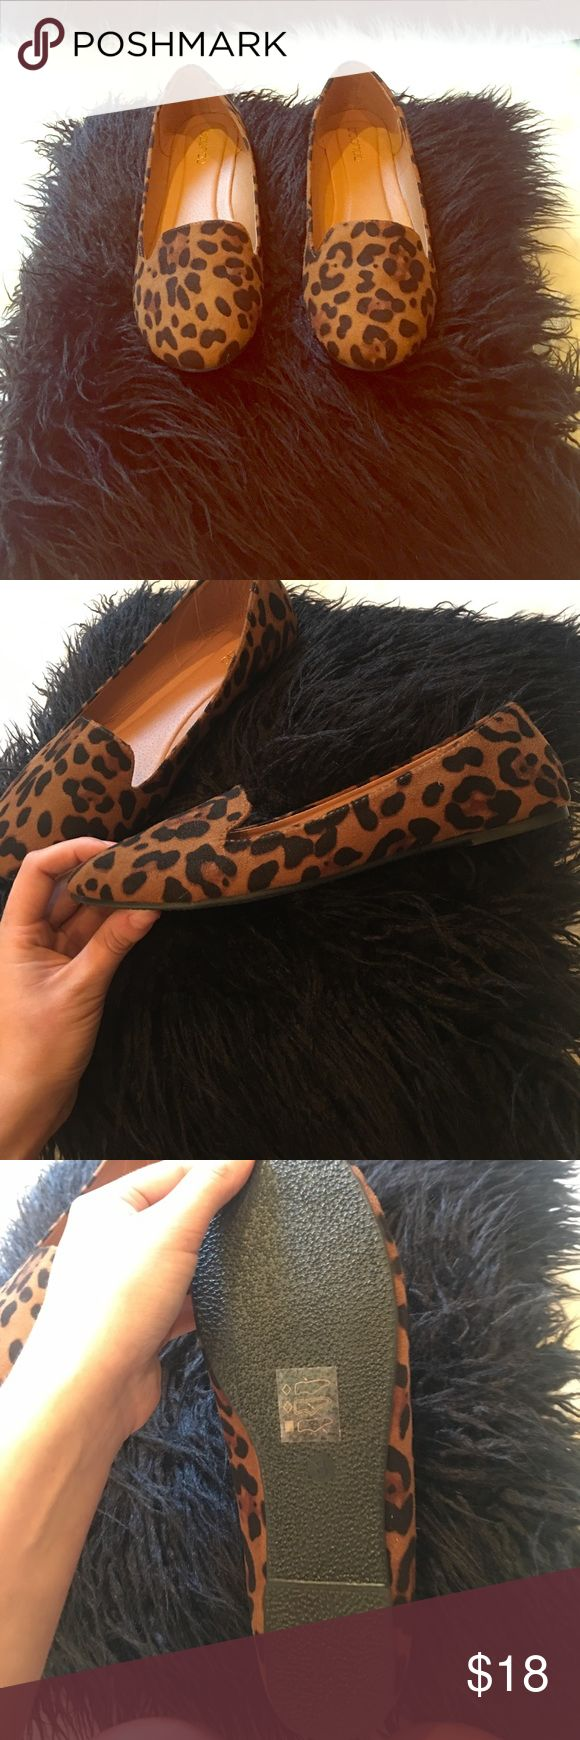 Leopard Ballet Flats Never worn.....again no box due to closet space Shoes